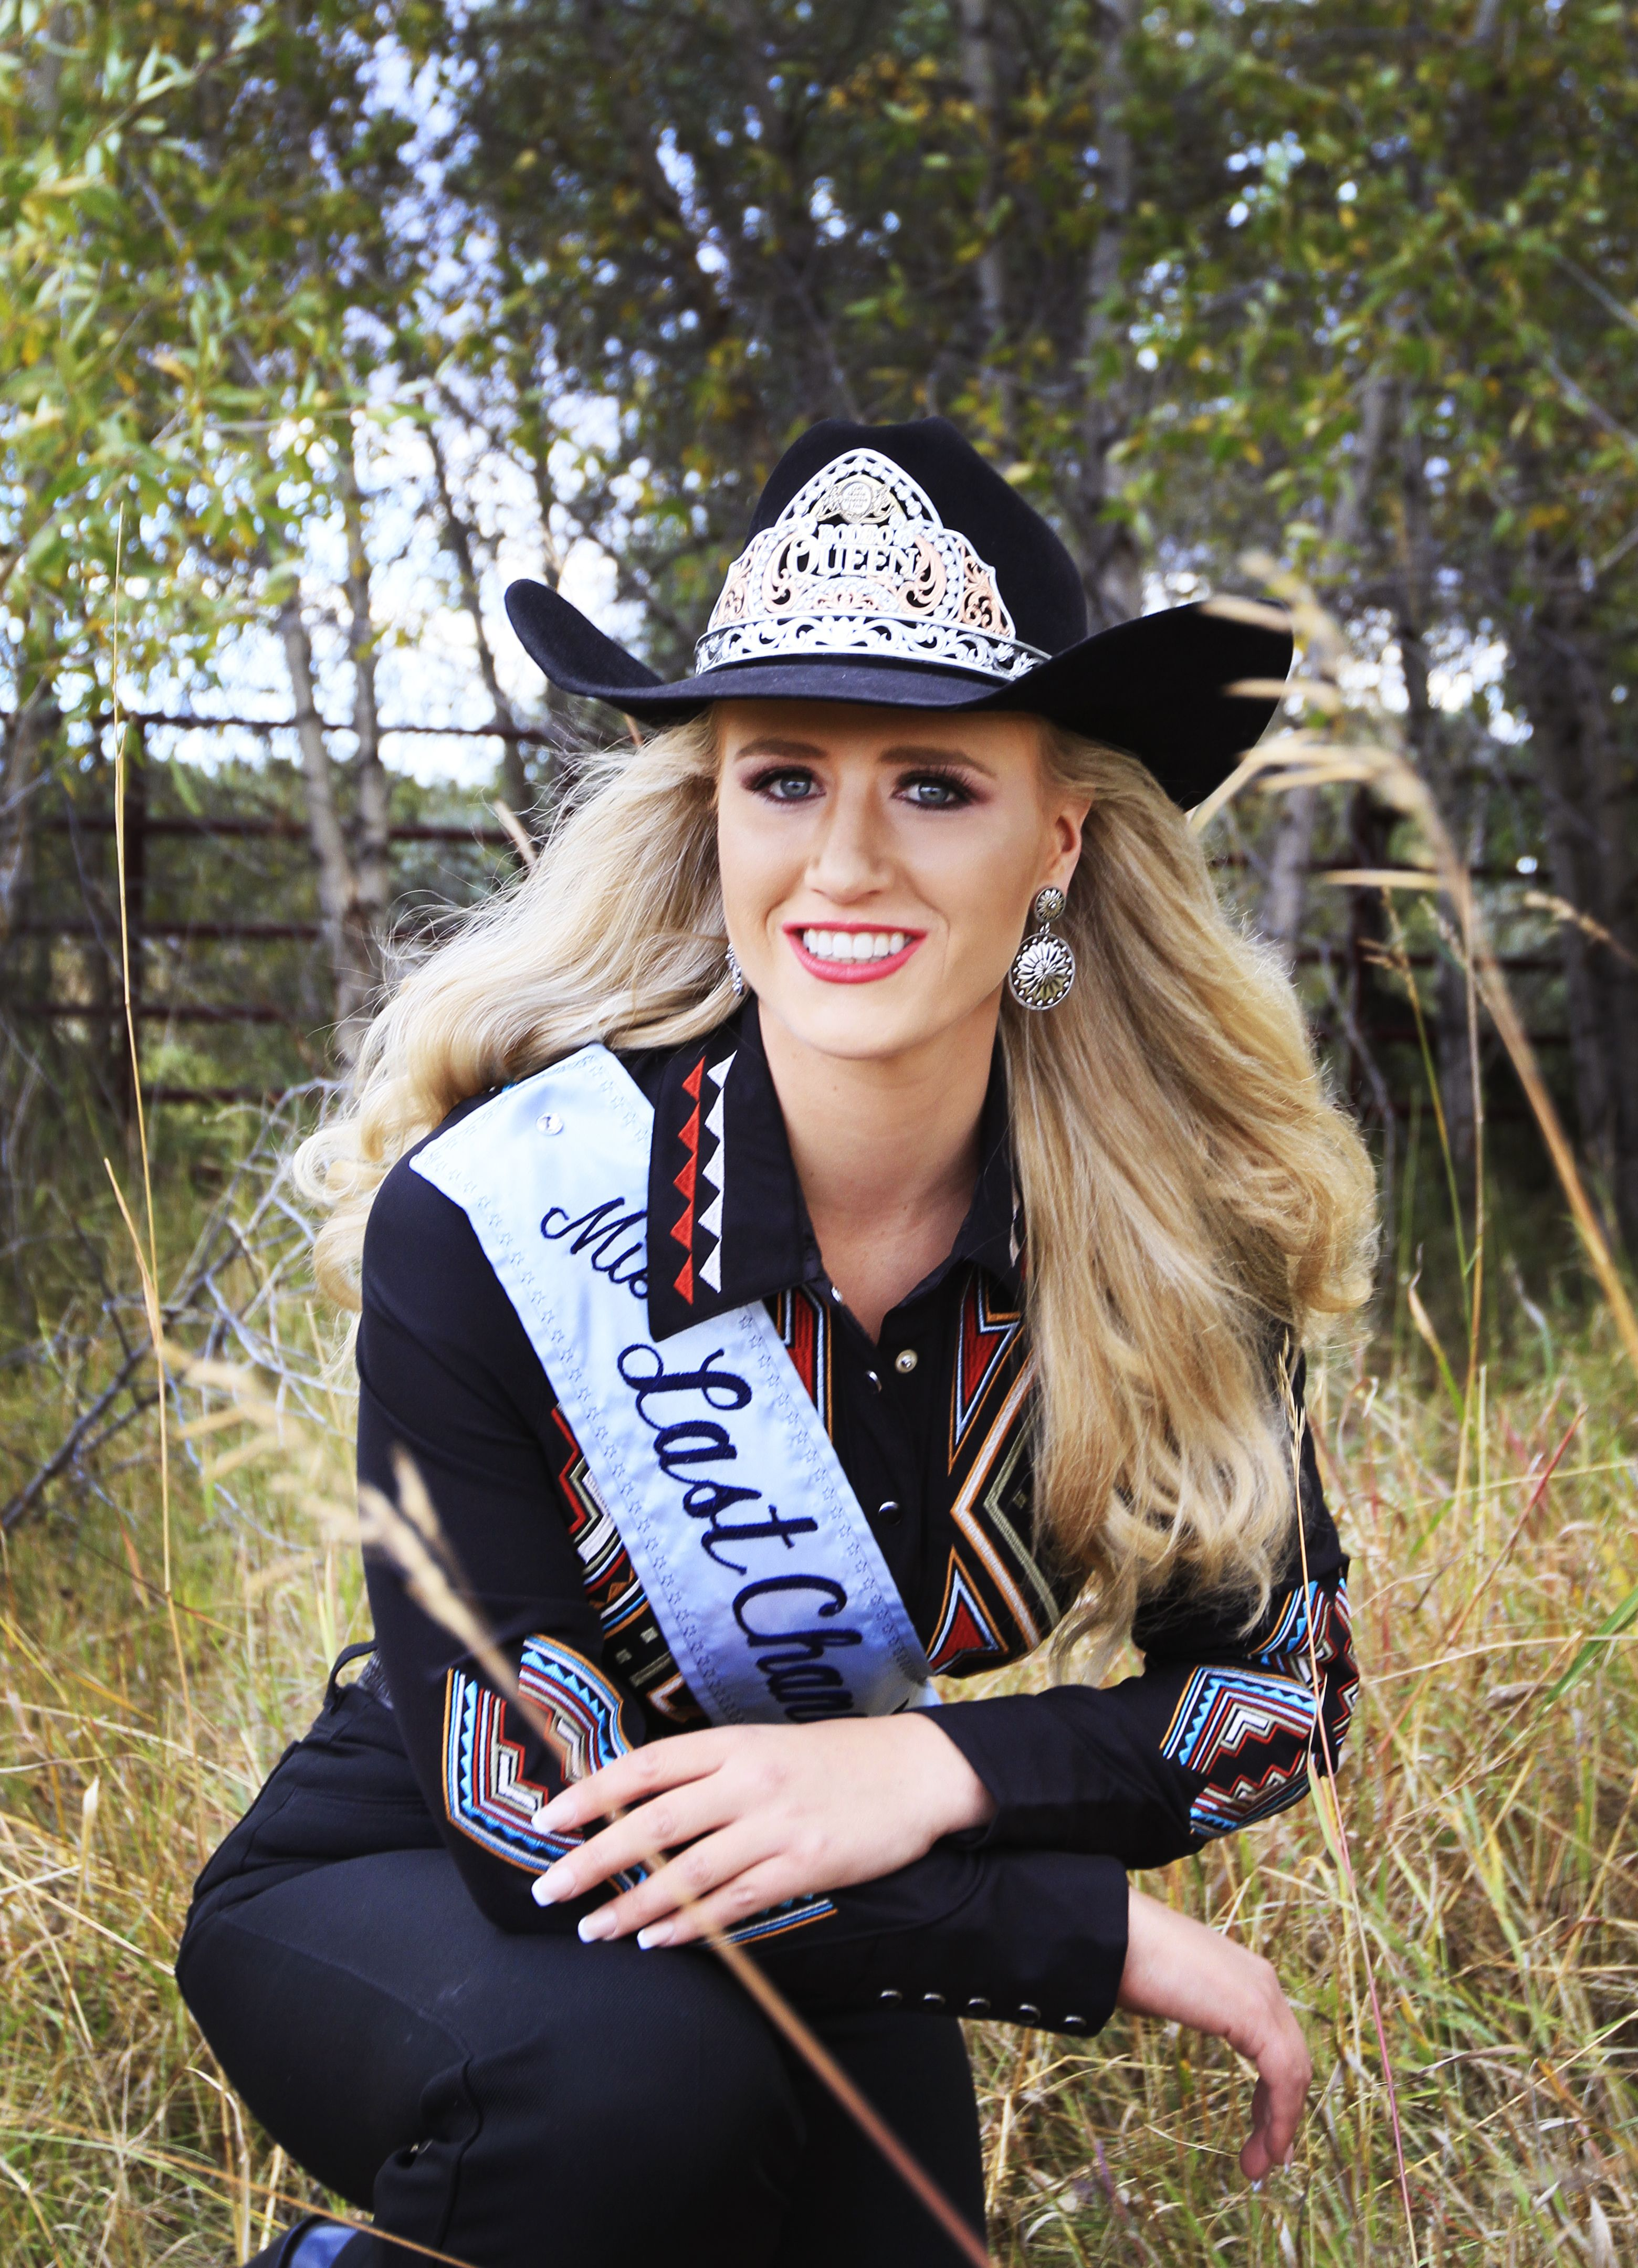 Kayla Seaman Is Competing For The Title Of Miss Rodeo